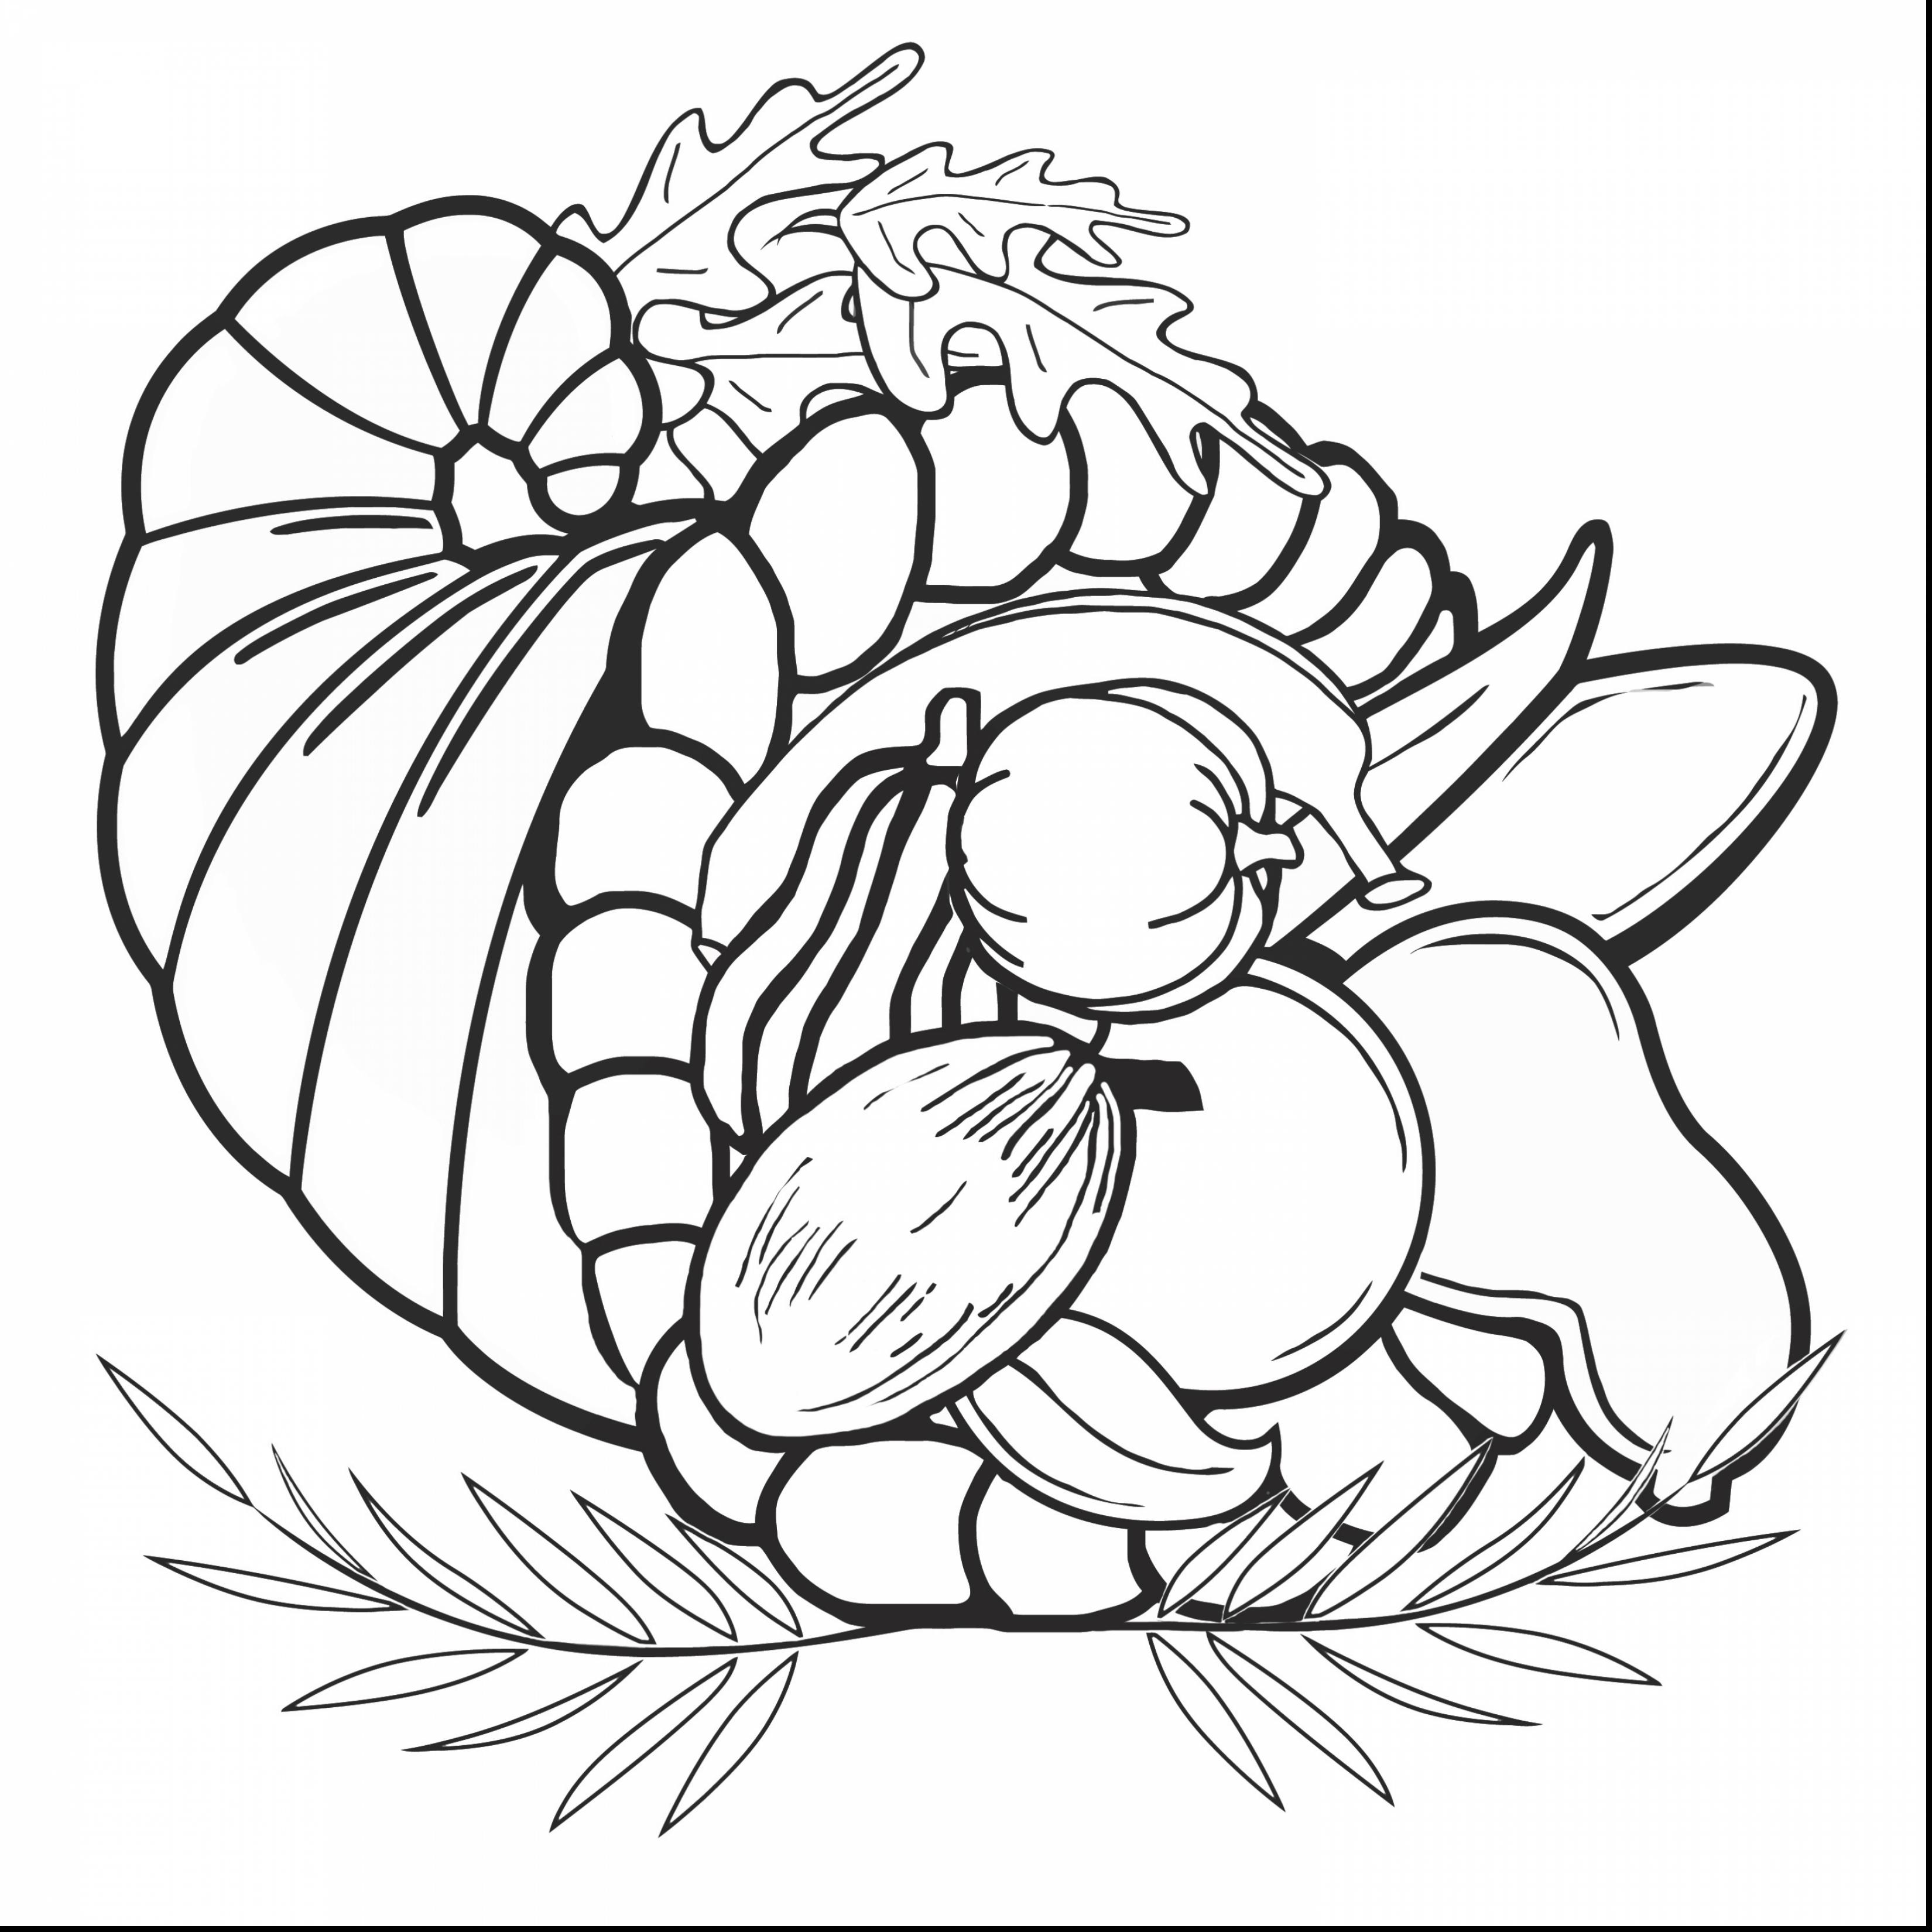 Cornucopia Drawing at GetDrawings.com | Free for personal use ...